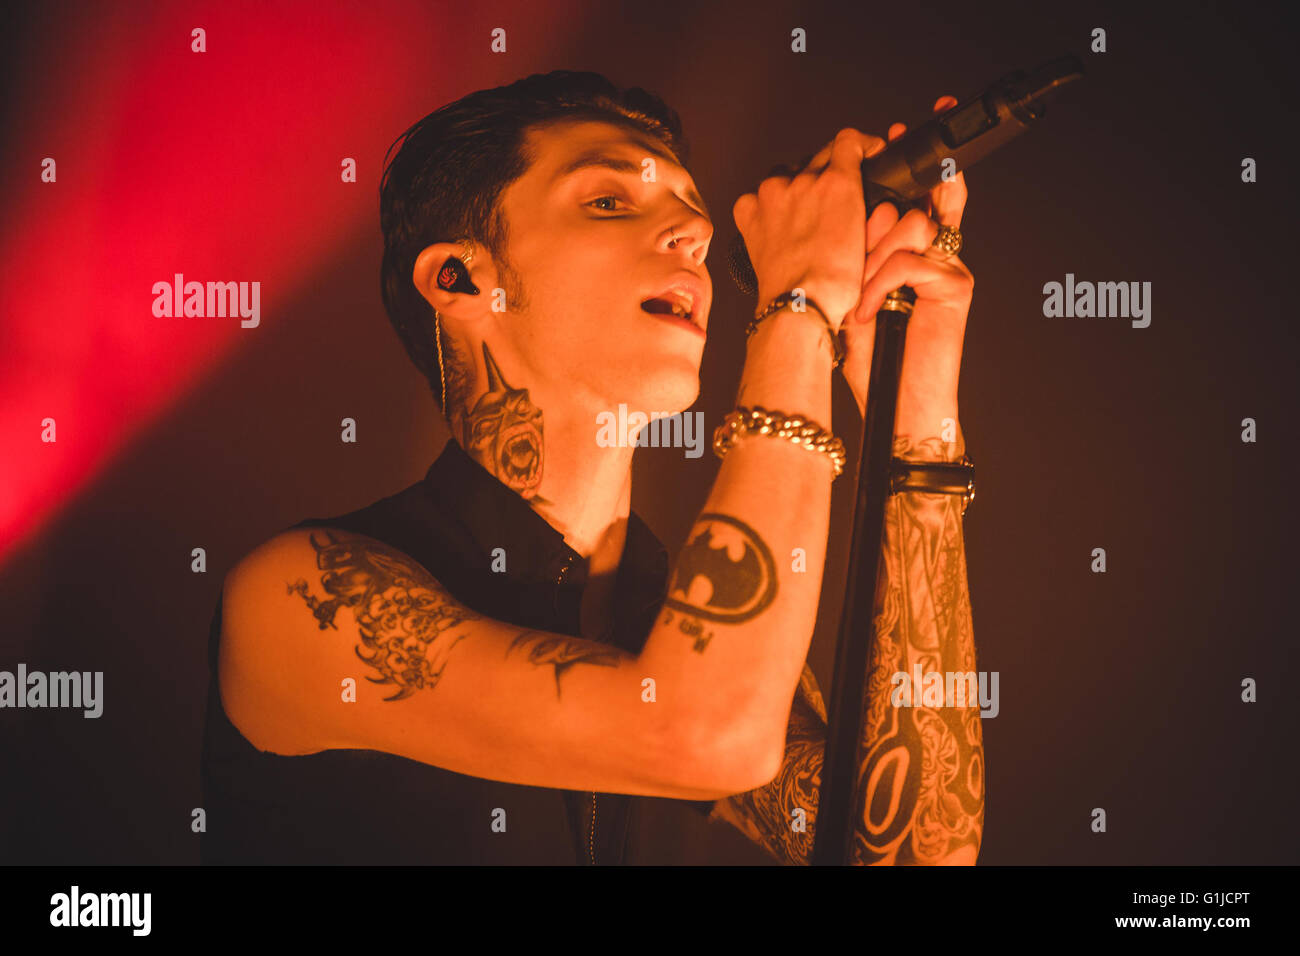 Andy Black Stock Photos & Andy Black Stock Images - Page 2